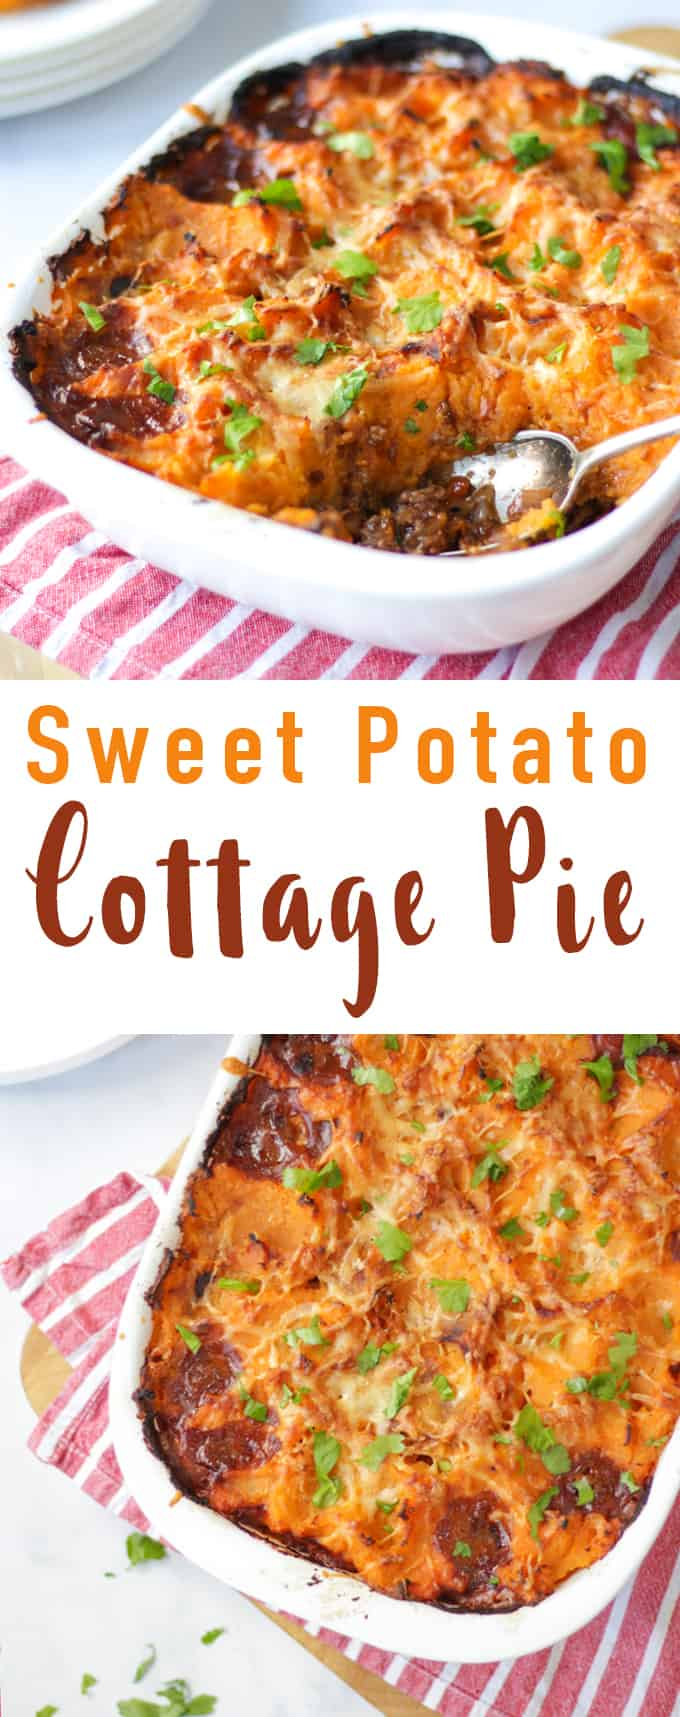 Sweet Potato Cottage Pie - Rich beef mince filling with carrots, celery and onions. This healthy cottage pie recipe makes the perfect family dinner recipe. Also suitable for freezing and easy to make Slimming World friendly or gluten free. #tamingtwins #cpottagepie #sweetpotato #comfort food #beefrecipe #autumn #winter